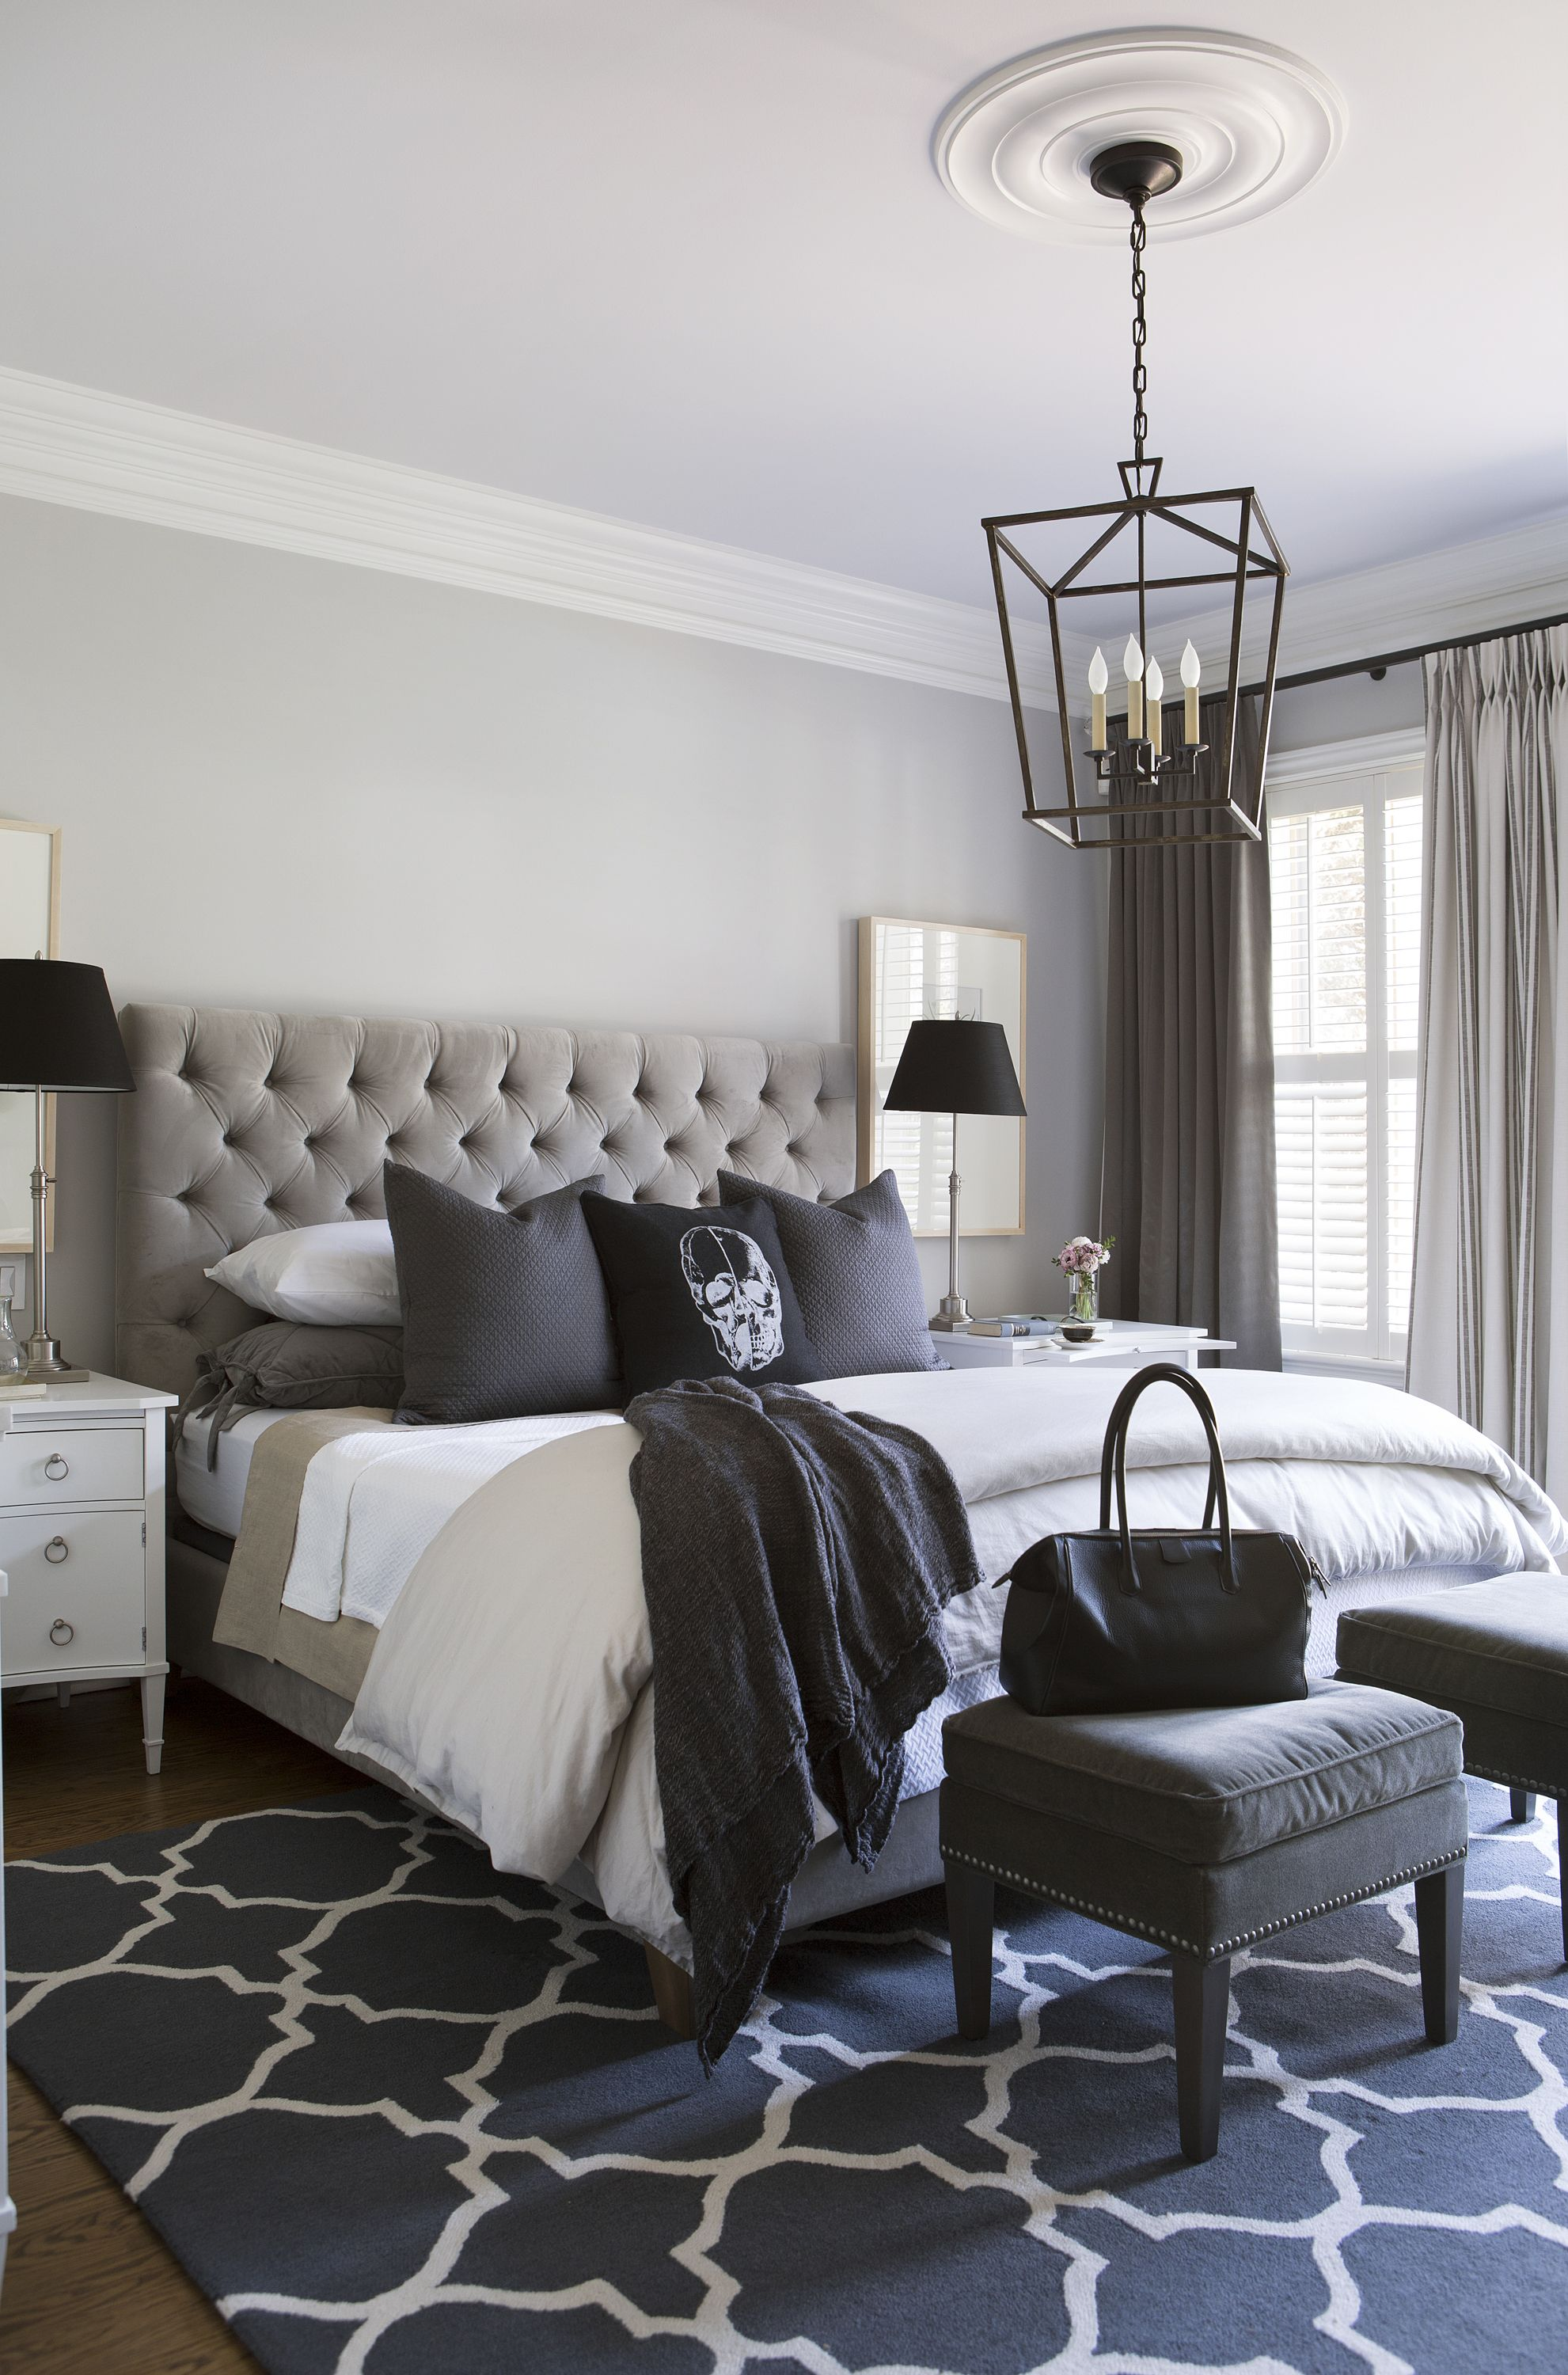 Master Bedroom In Greys And Lavender With Skull Cushion Jean Stephane Beauchamp Design Photo